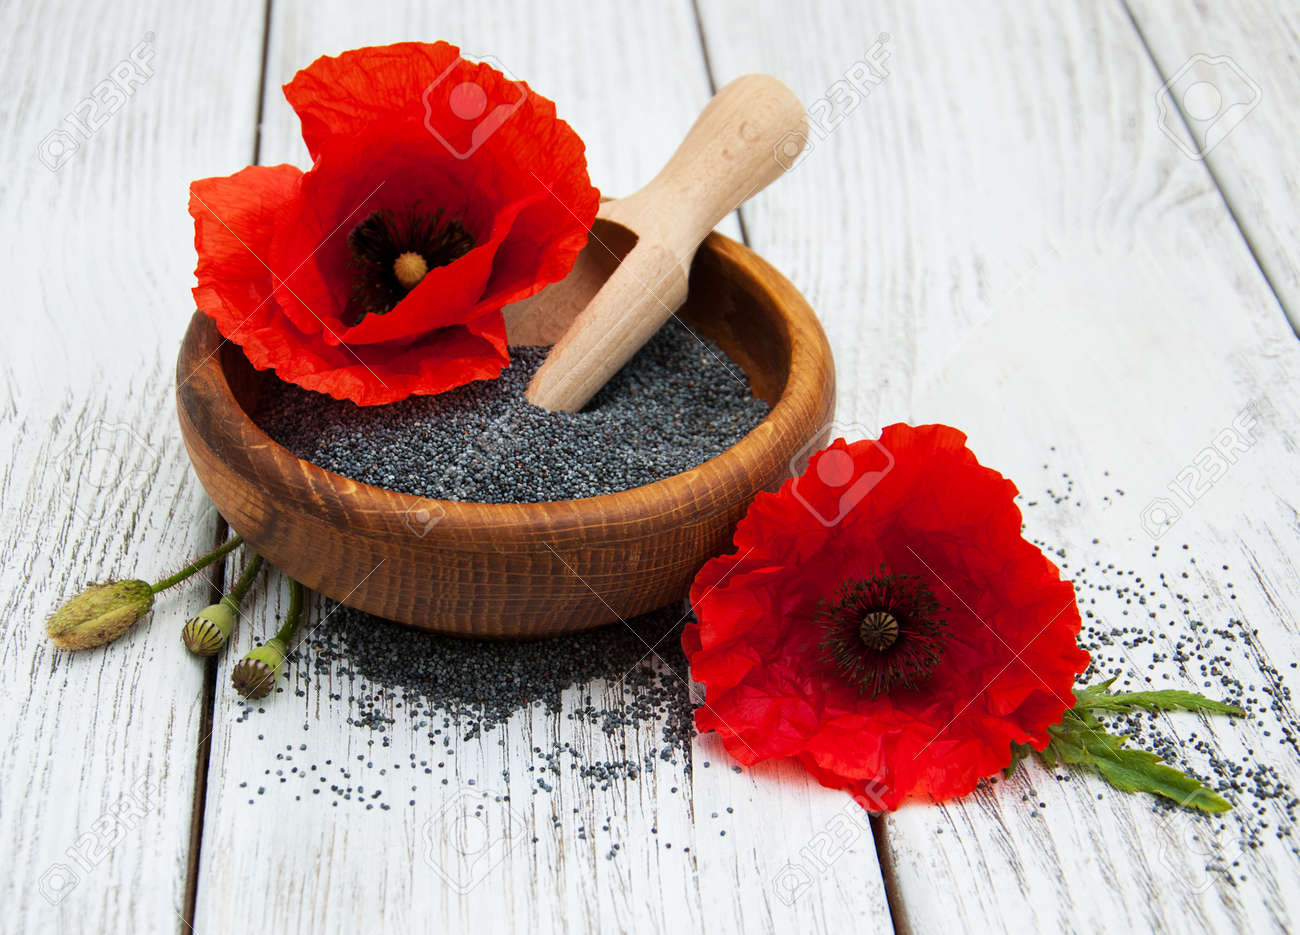 Bowl With Poppy Seeds And Poppy Flowers Stock Photo Picture And